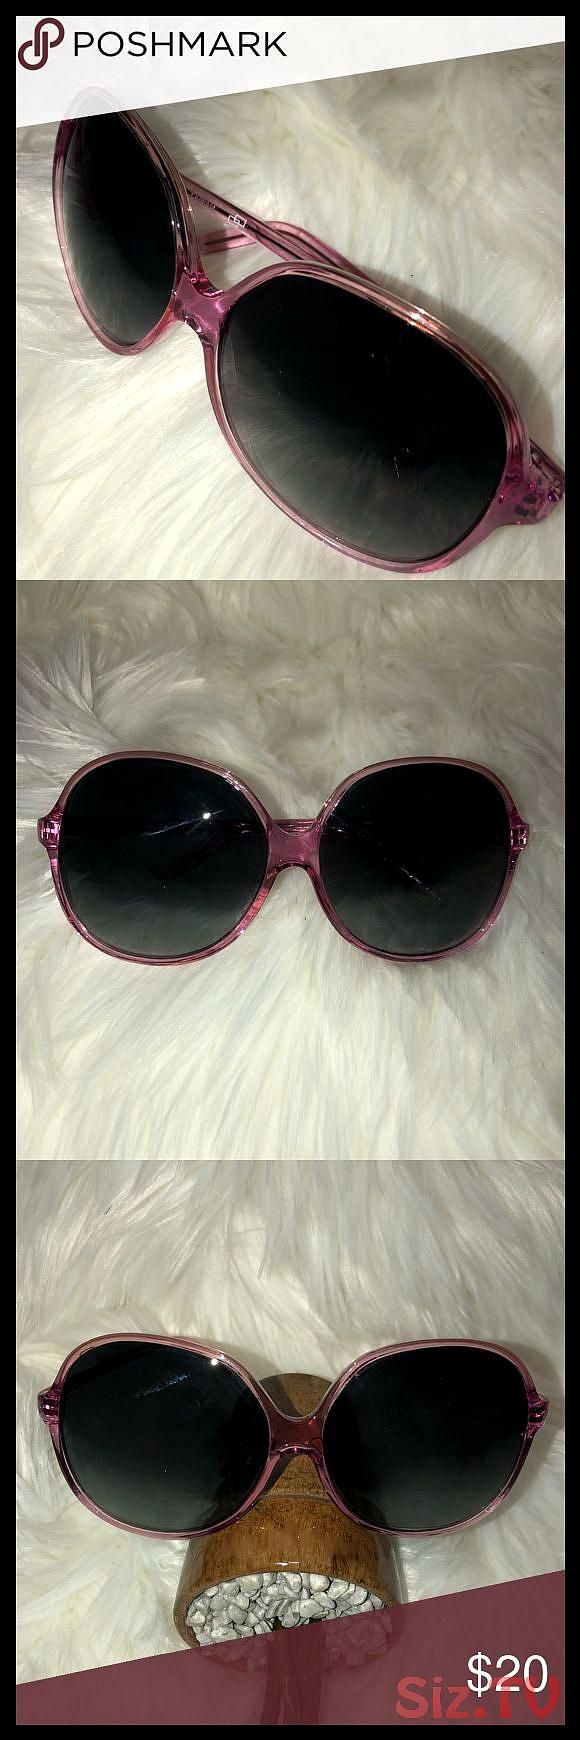 Pretty in Pink Sunglasses Super pink 038 pretty Sunglasses Not sure of maker but purchased from the estate of a super stylish classy 038 wealthy shopahPretty in Pink Sung...